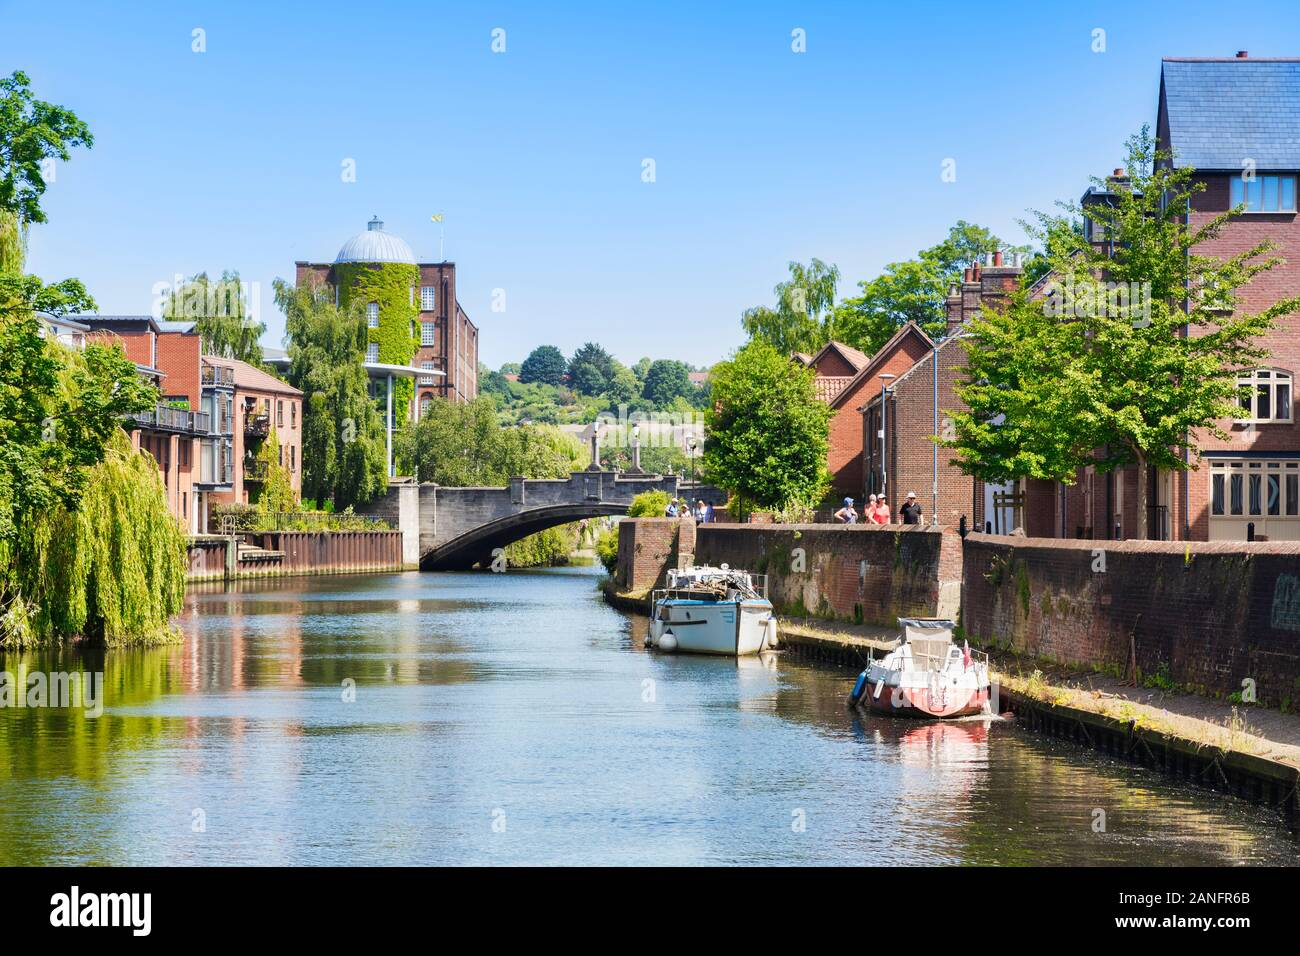 29 June 2019: Norwich, Norfolk, UK - Tourists walking beside the River Wensum on a sunny summer day. Stock Photo